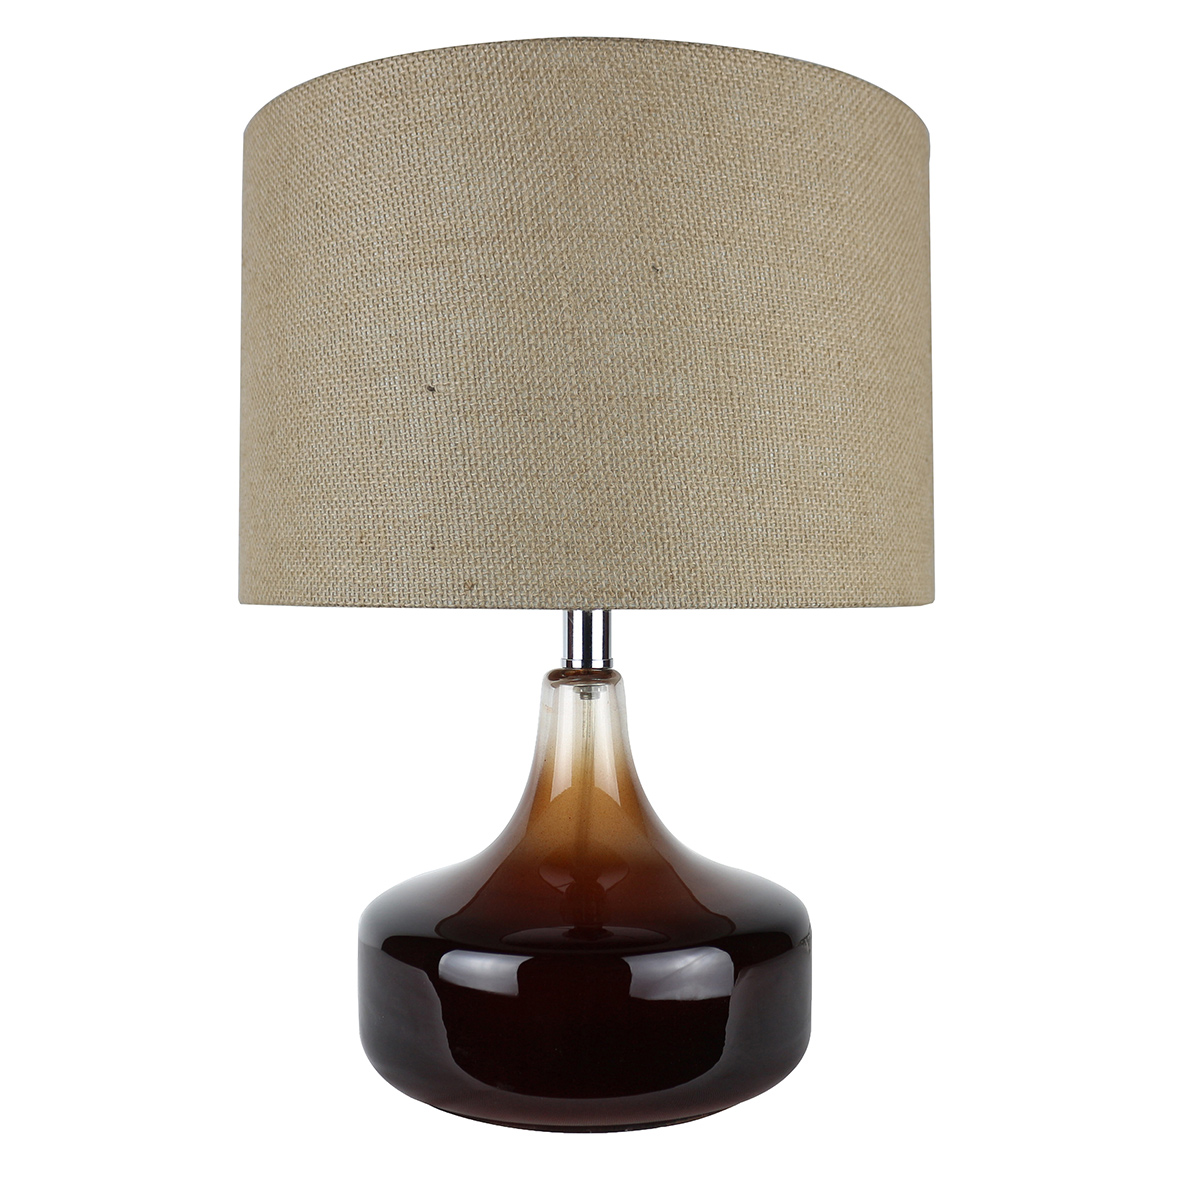 Black and Tan Accent Lamp